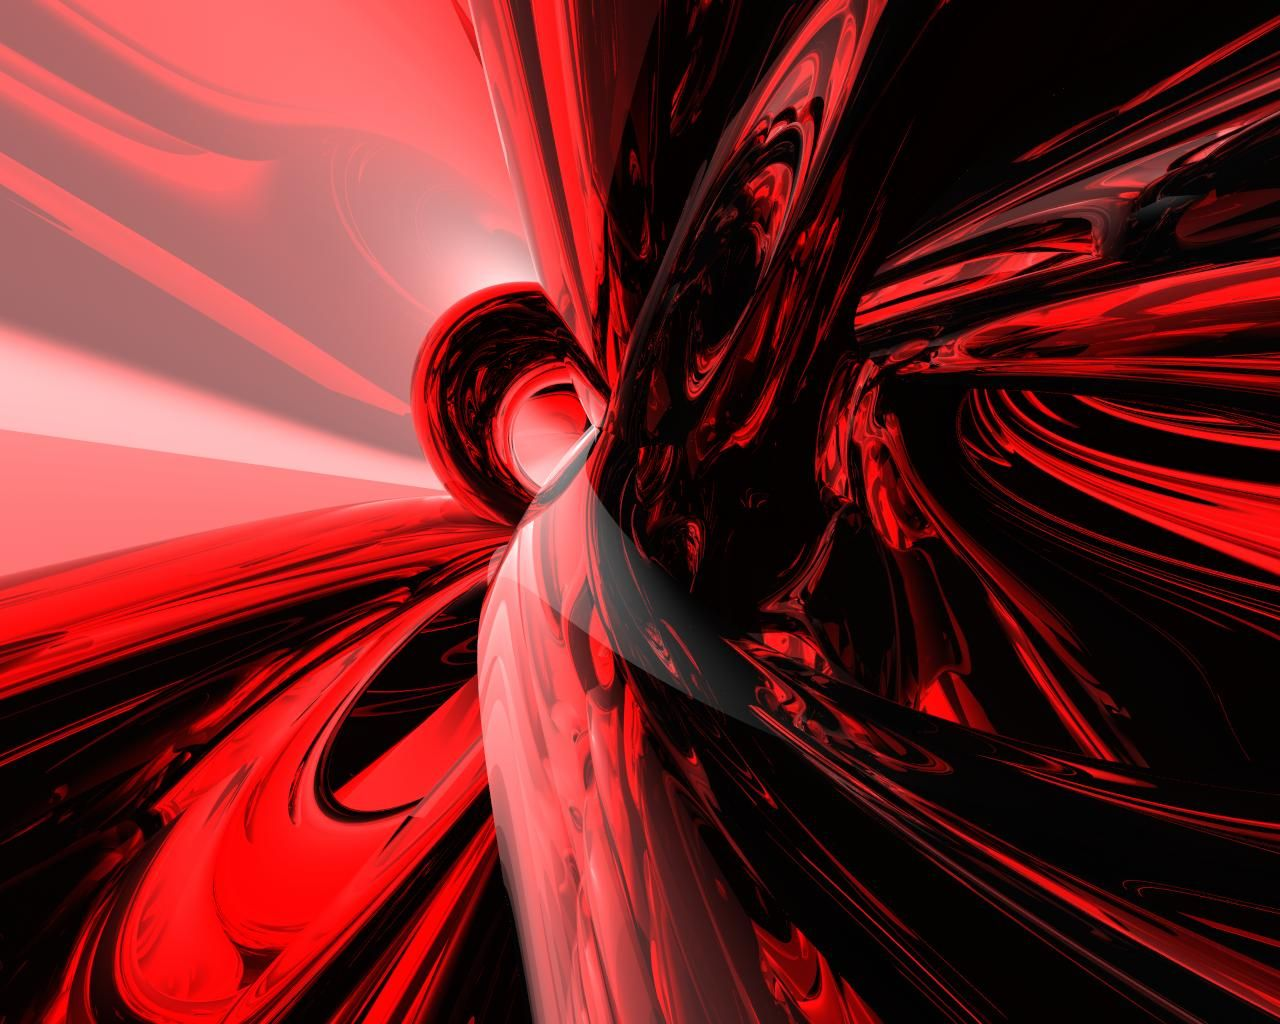 Red and black abstract backgrounds wallpaper 1280 1024 - Black red abstract wallpaper ...